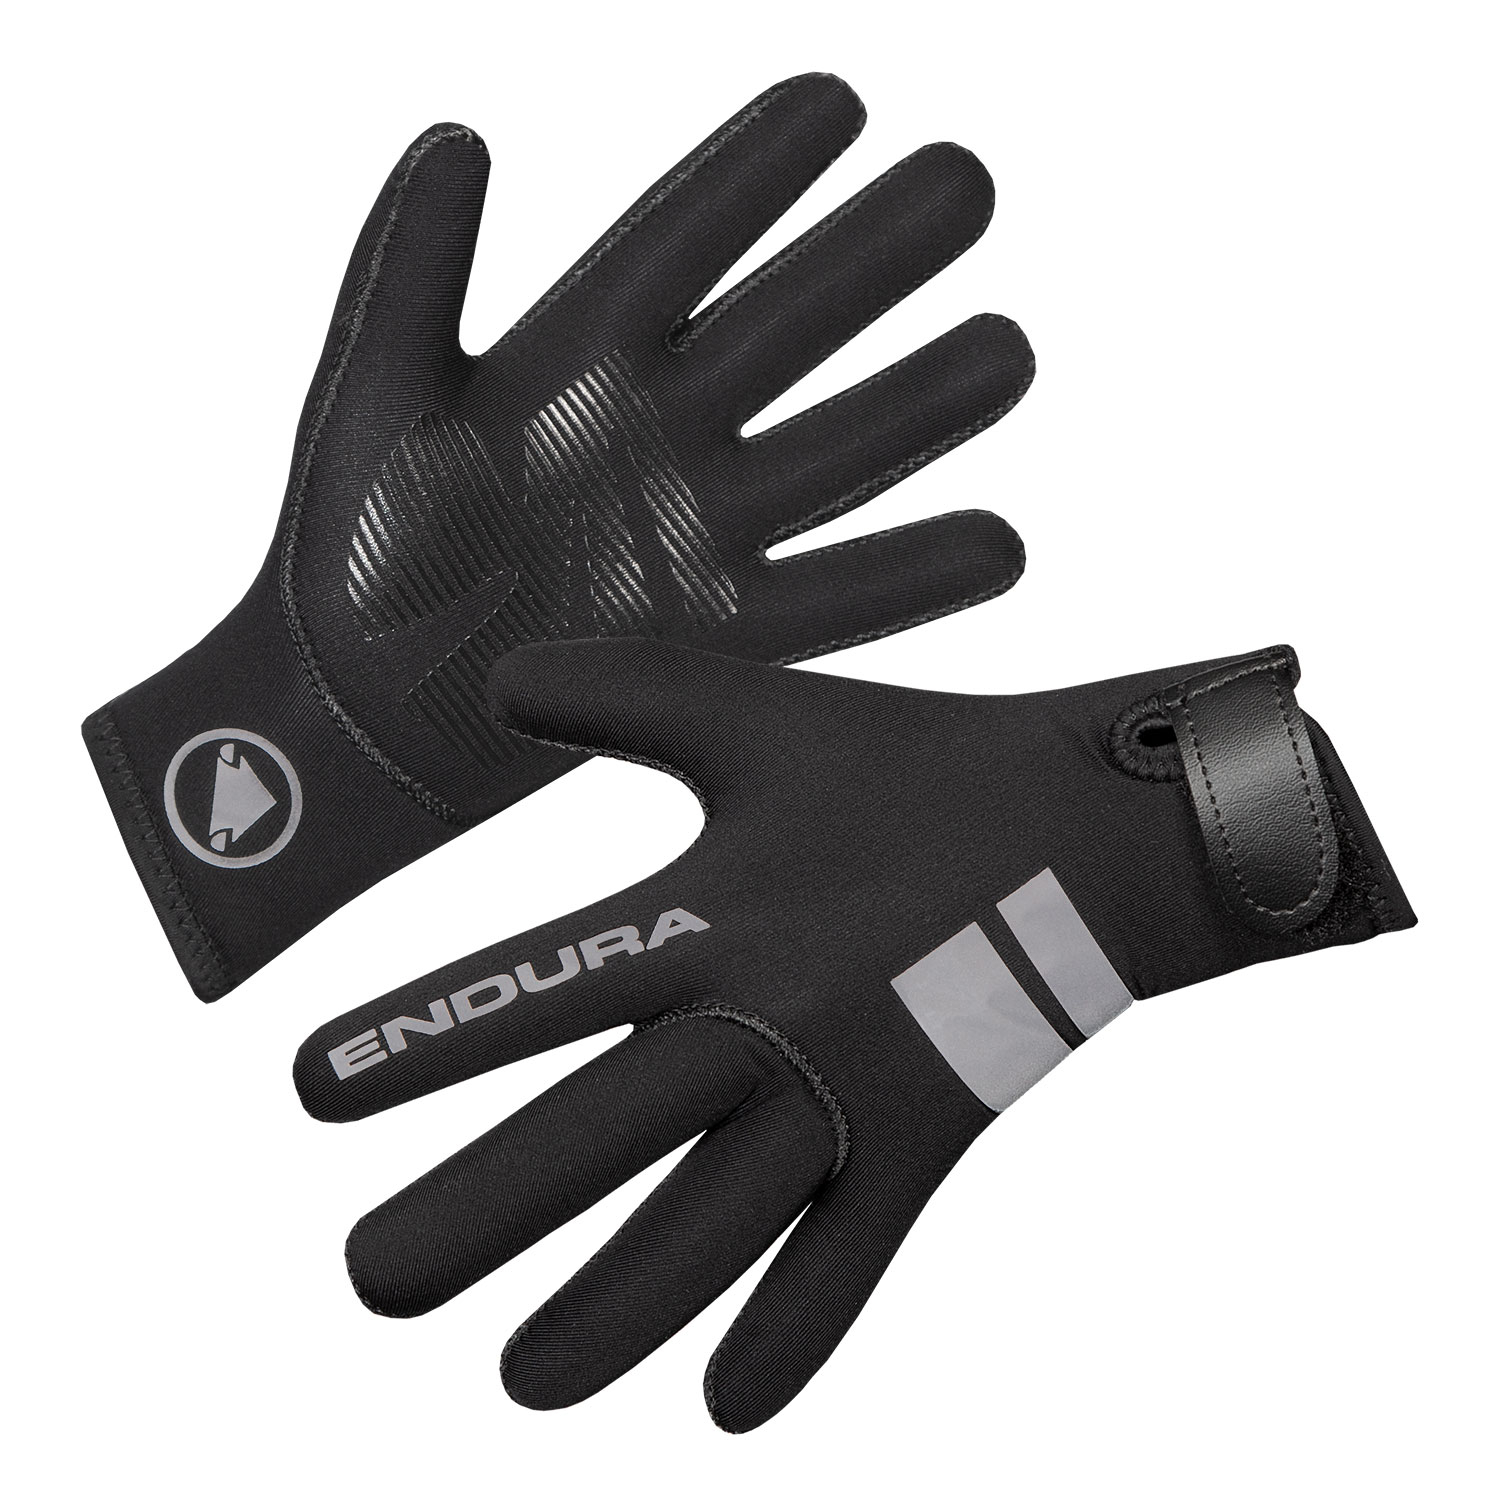 | Endura Fietshandschoenen Winter Kids Zwart - Kid's Nemo II Glove Black